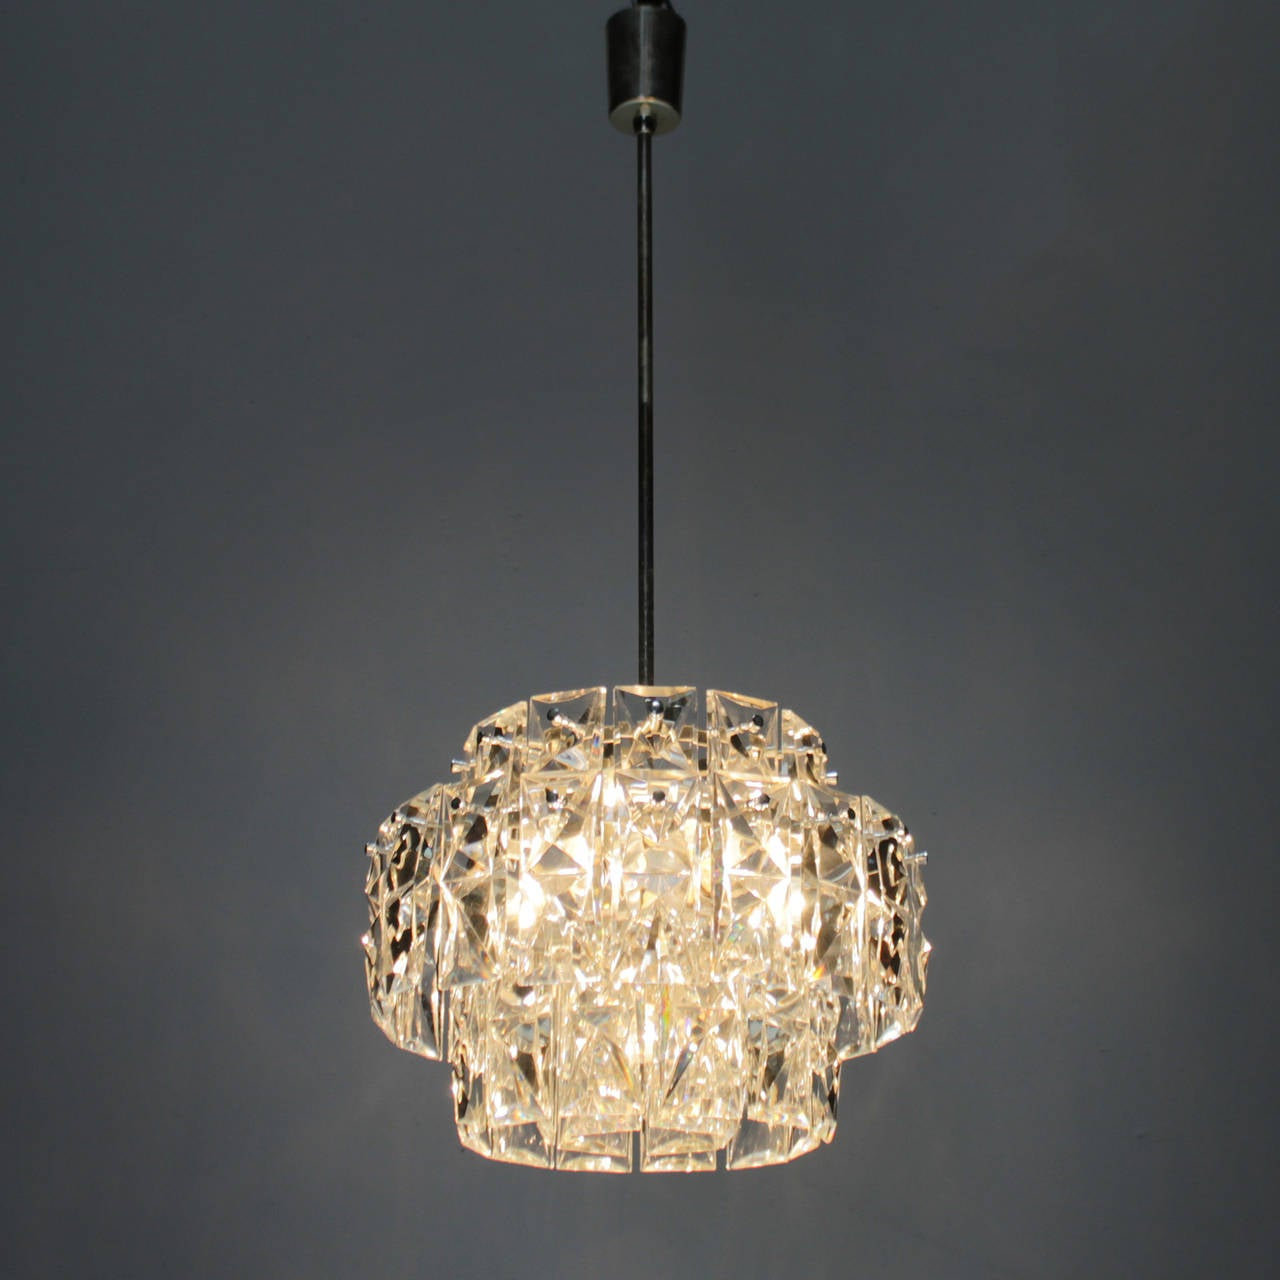 Nickel plated kinkeldey chandelier with rectangular crystals for chandelier with rectangular crystals for sale this classic yet modern exquisite kinkeldey lamp has four tiers and is fitted with 48 arubaitofo Images